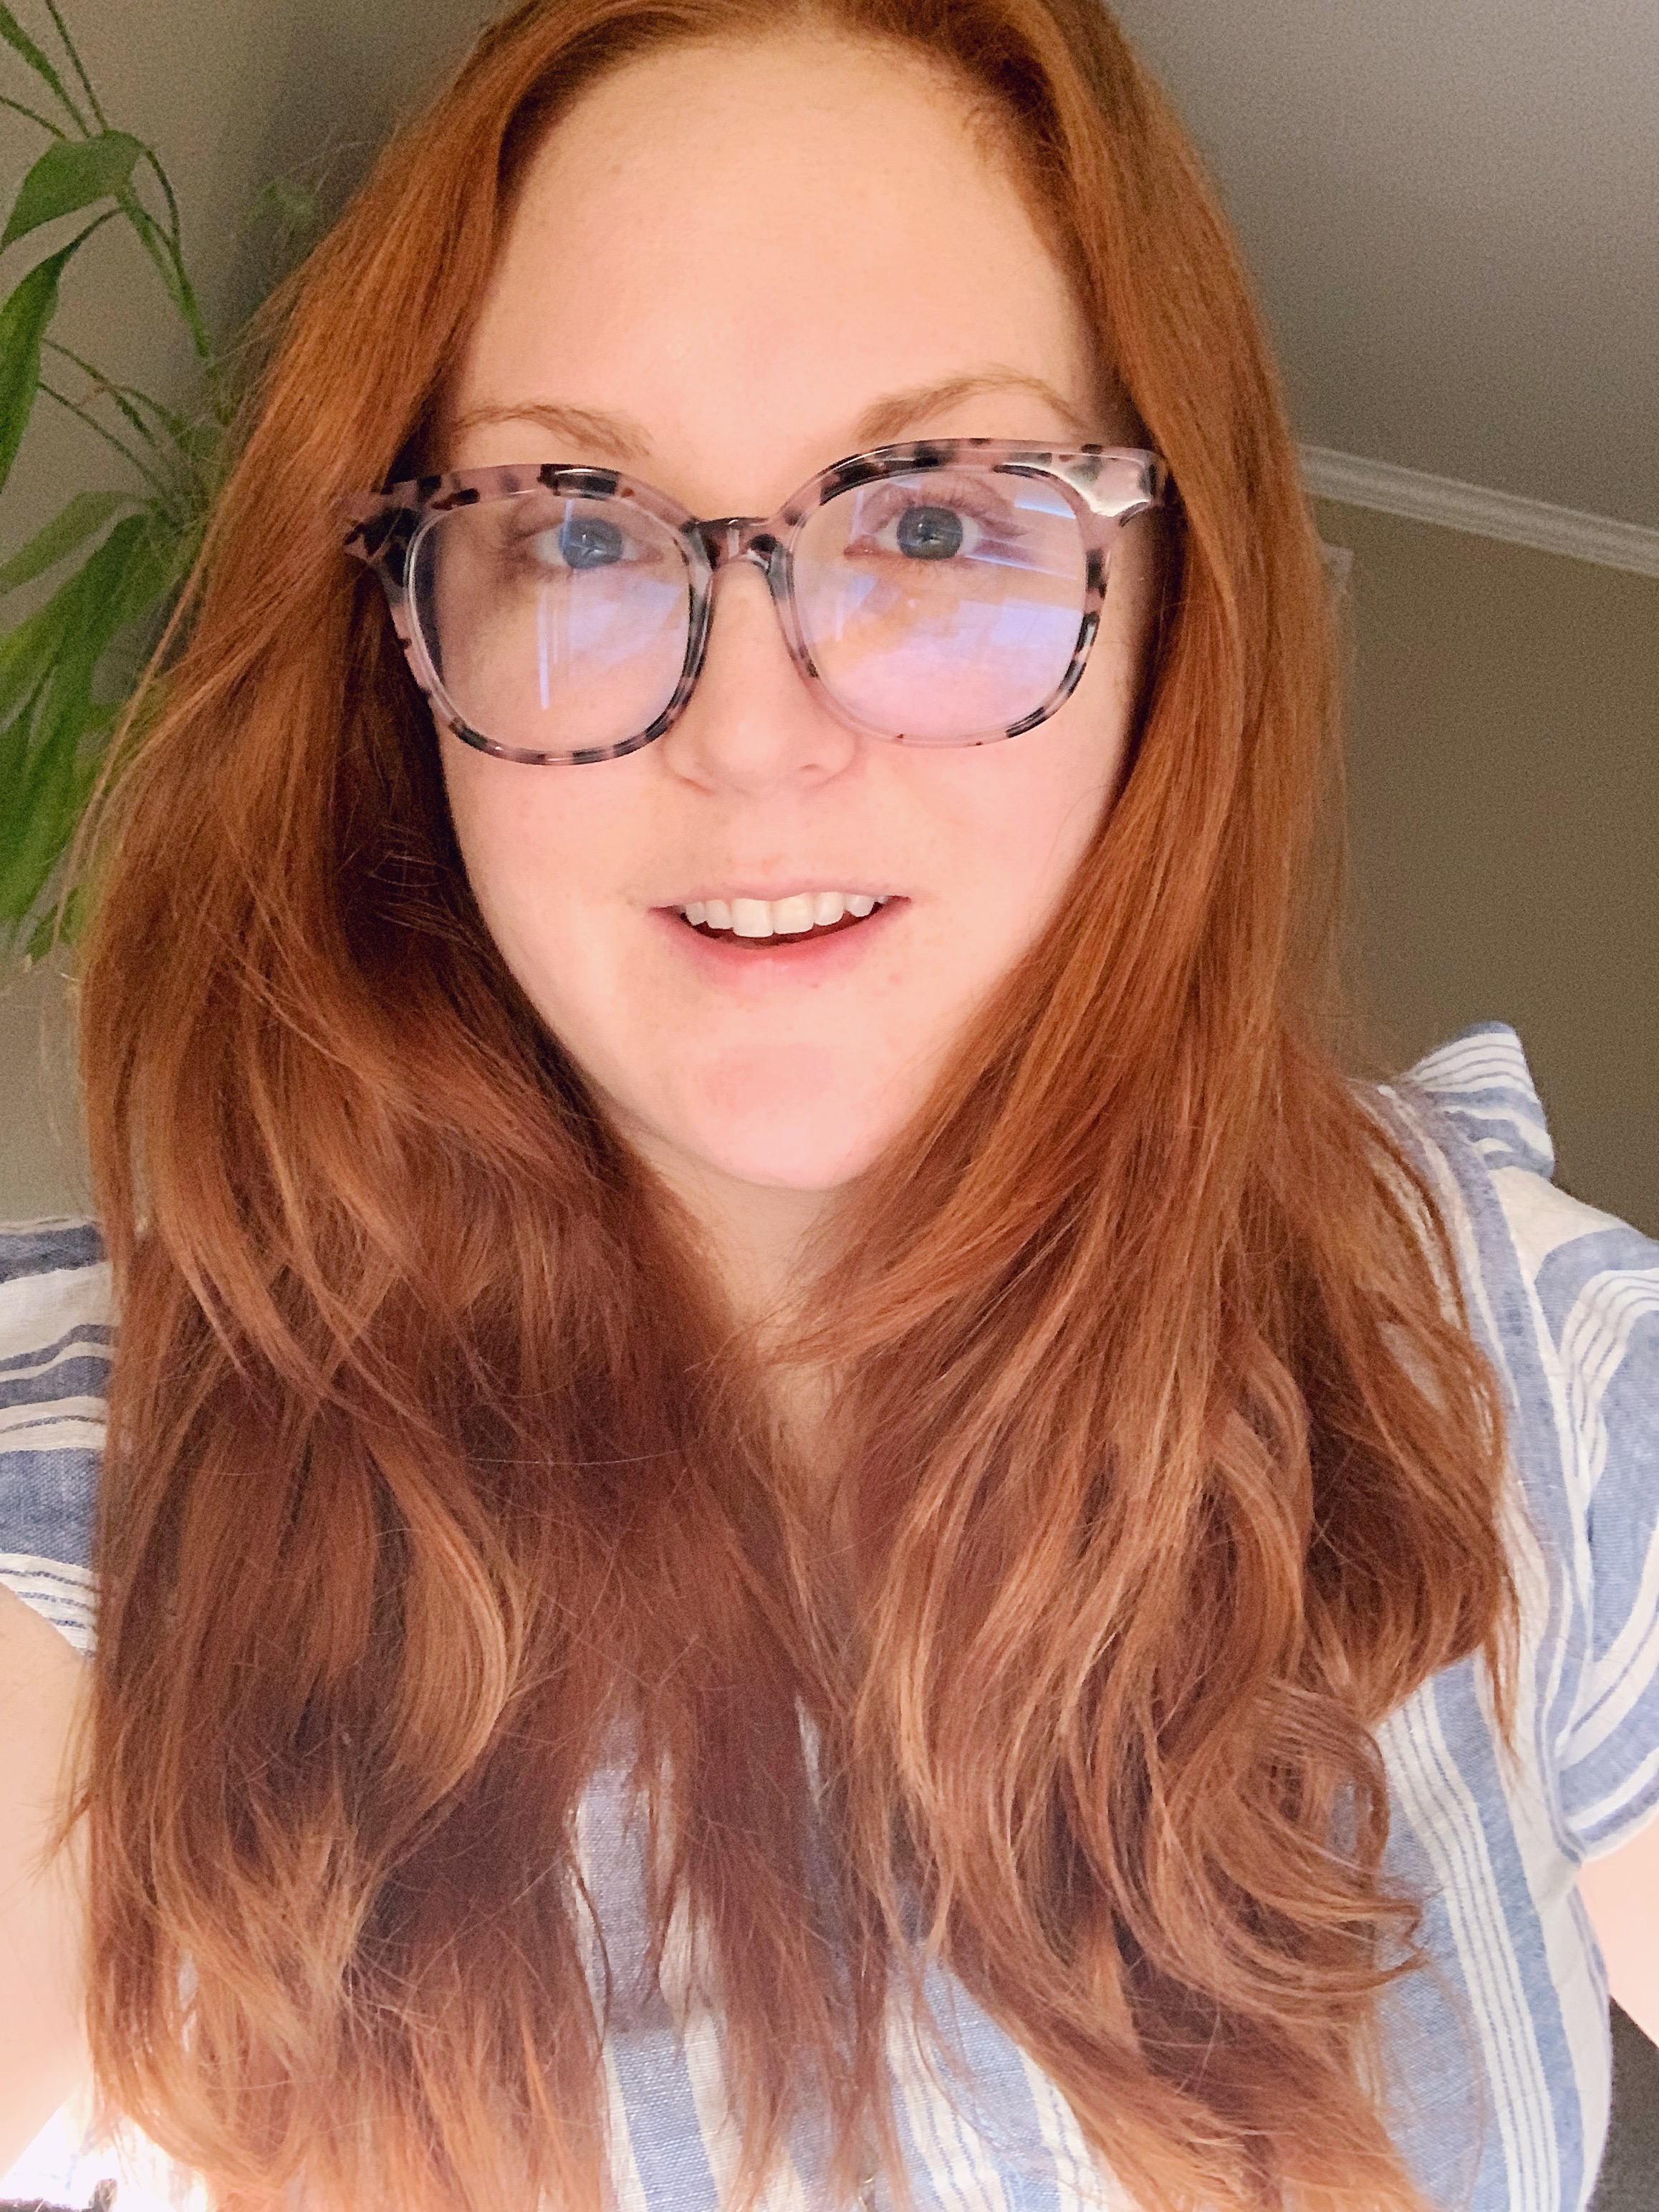 The results show: soft, clean hair. I woke up like this, and I'm not ashamed of that wavy hair freedom. Excited to continue using this on my scalp!